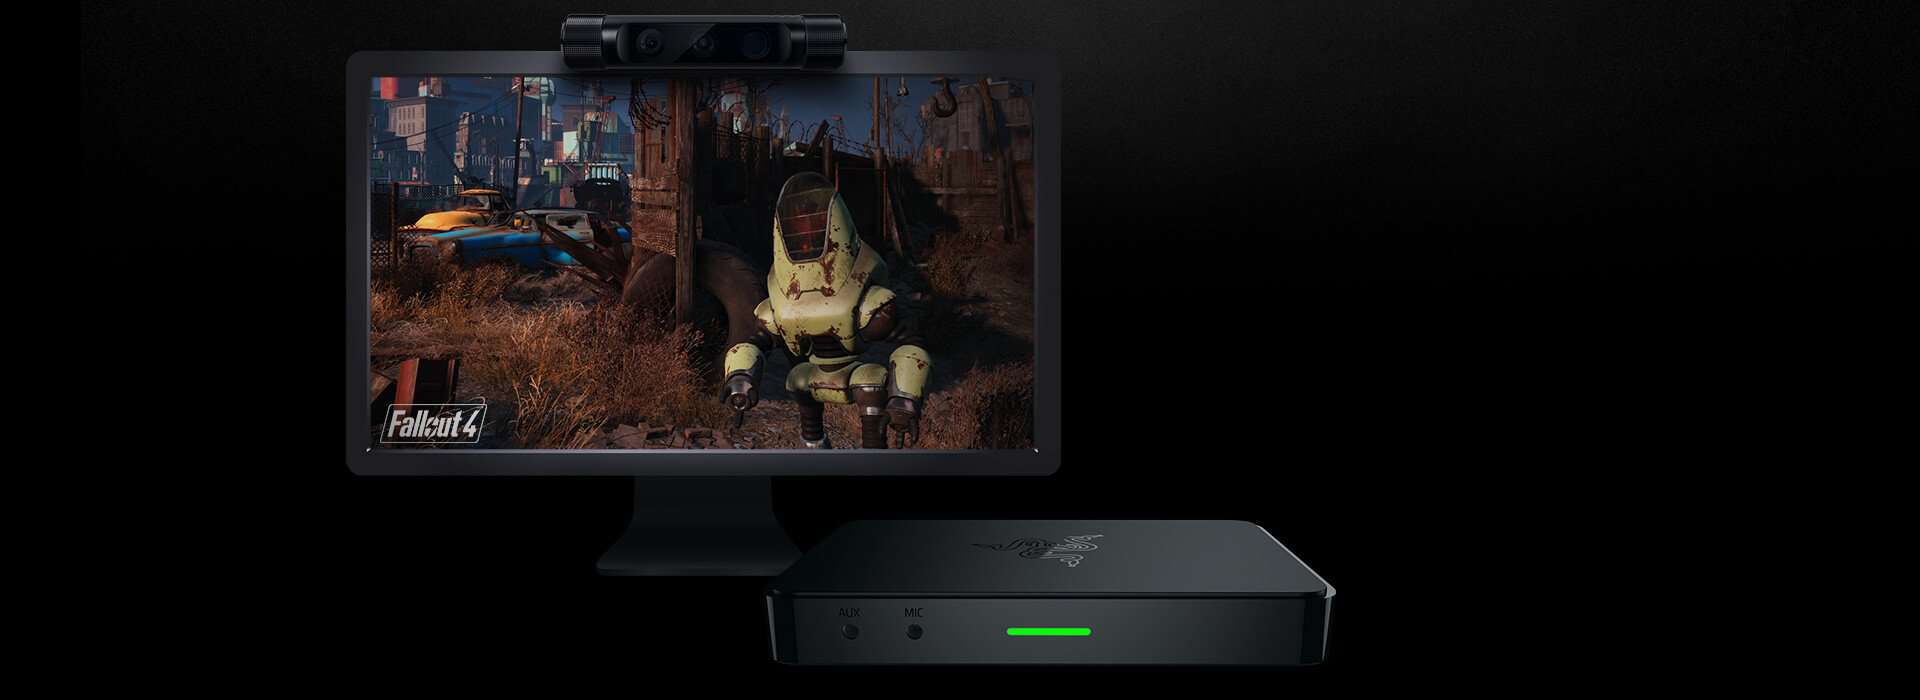 Best Capture Cards 2019 – Capture Card Reviews and Buying Guide